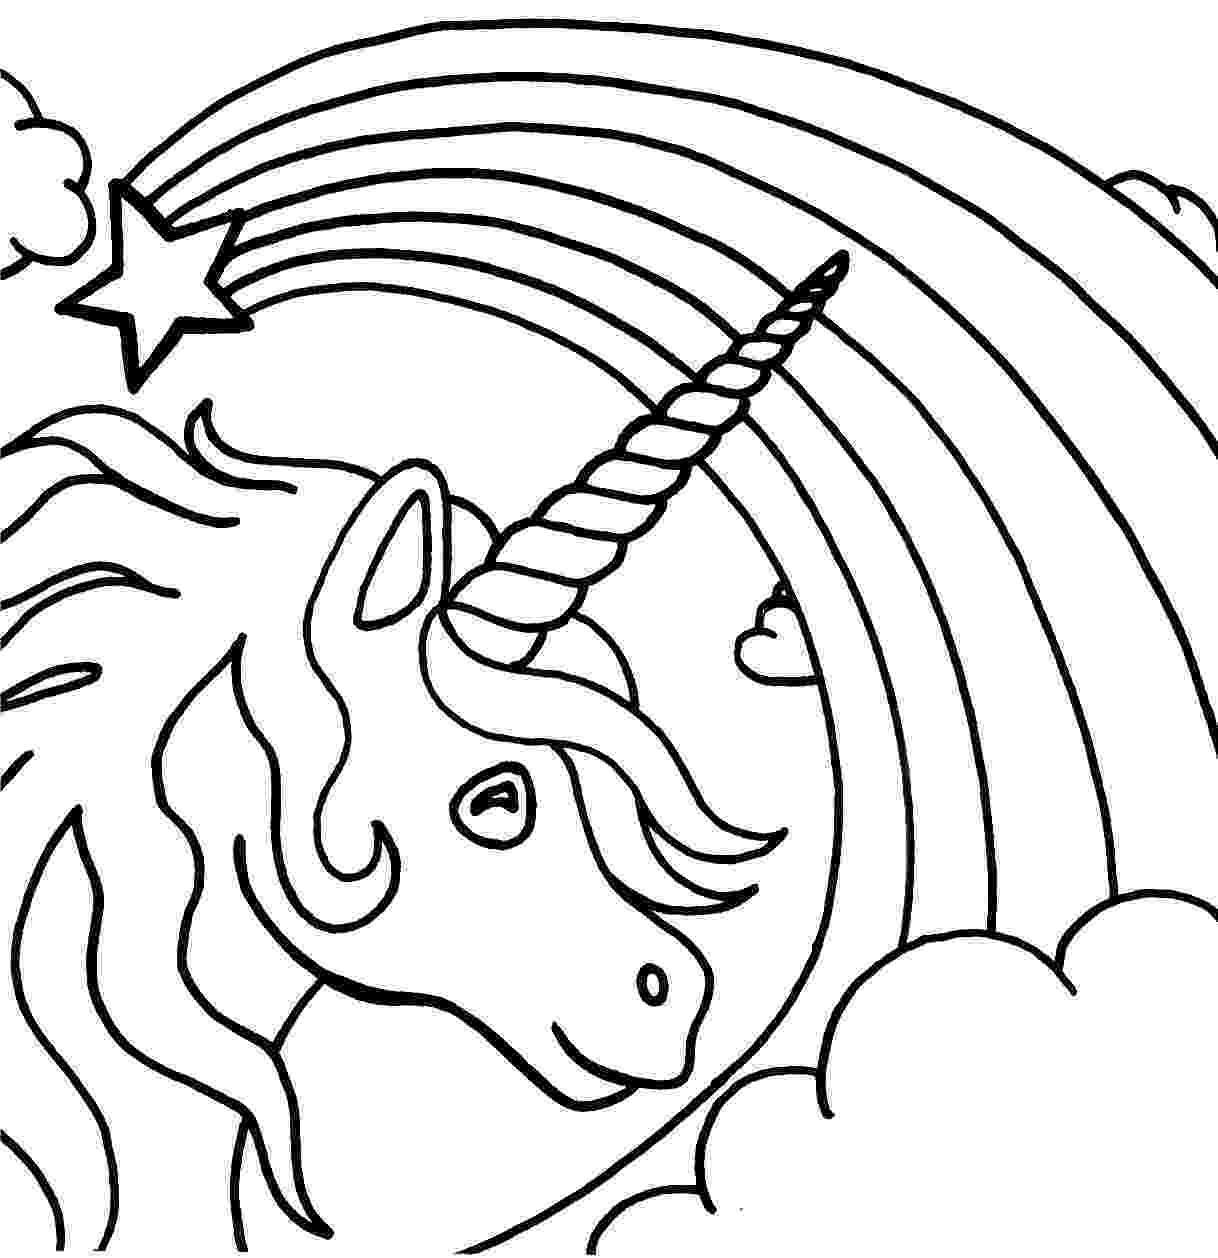 unicorns coloring pages free printable unicorn coloring pages for kids cool2bkids unicorns coloring pages